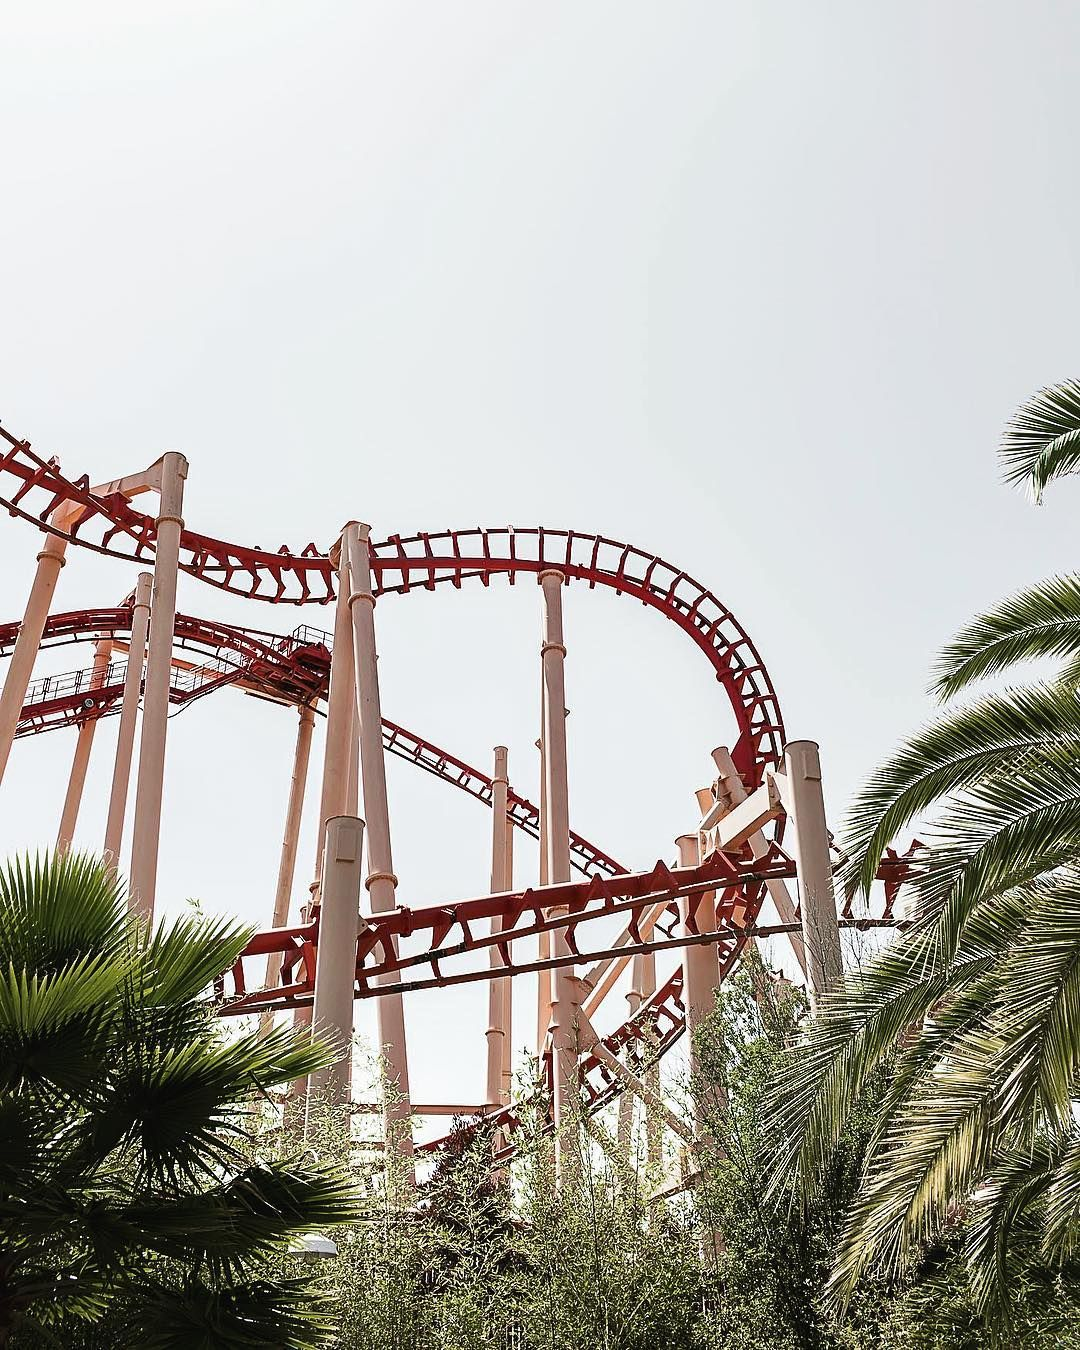 My Favorite Roller Coaster At Six Flags Discovery Kingdom Kong I Remember Being There With A Friend In 8th Grad Explore California Theme Park Roller Coaster